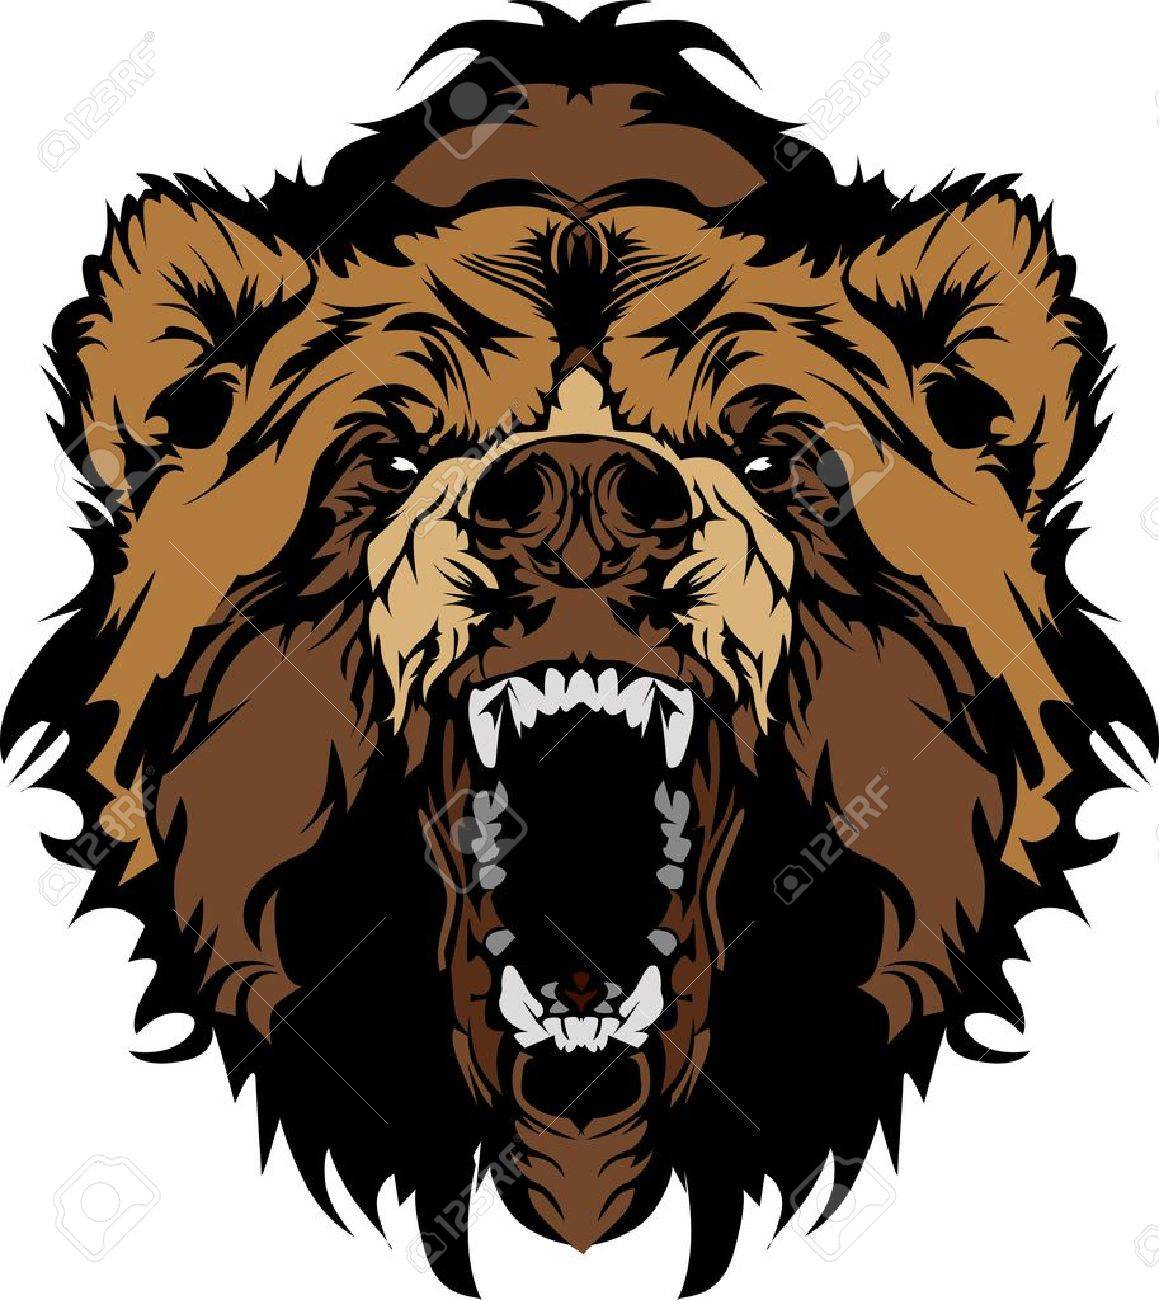 hight resolution of grizzly bear mascot head vector graphic stock vector 10743804